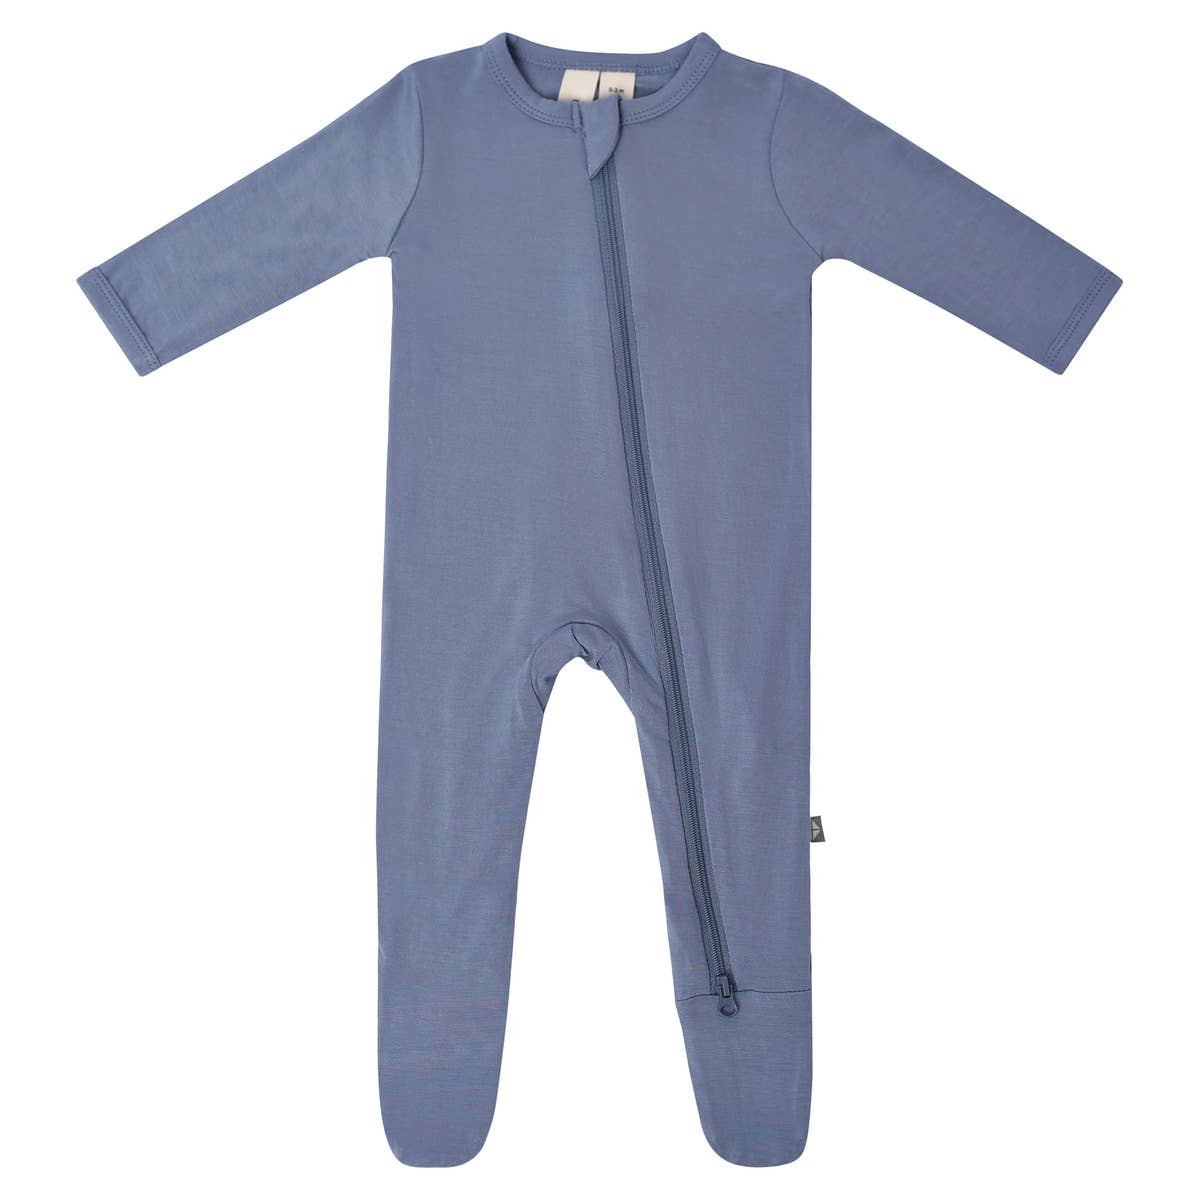 Kyte Baby Zipper Footie in Slate